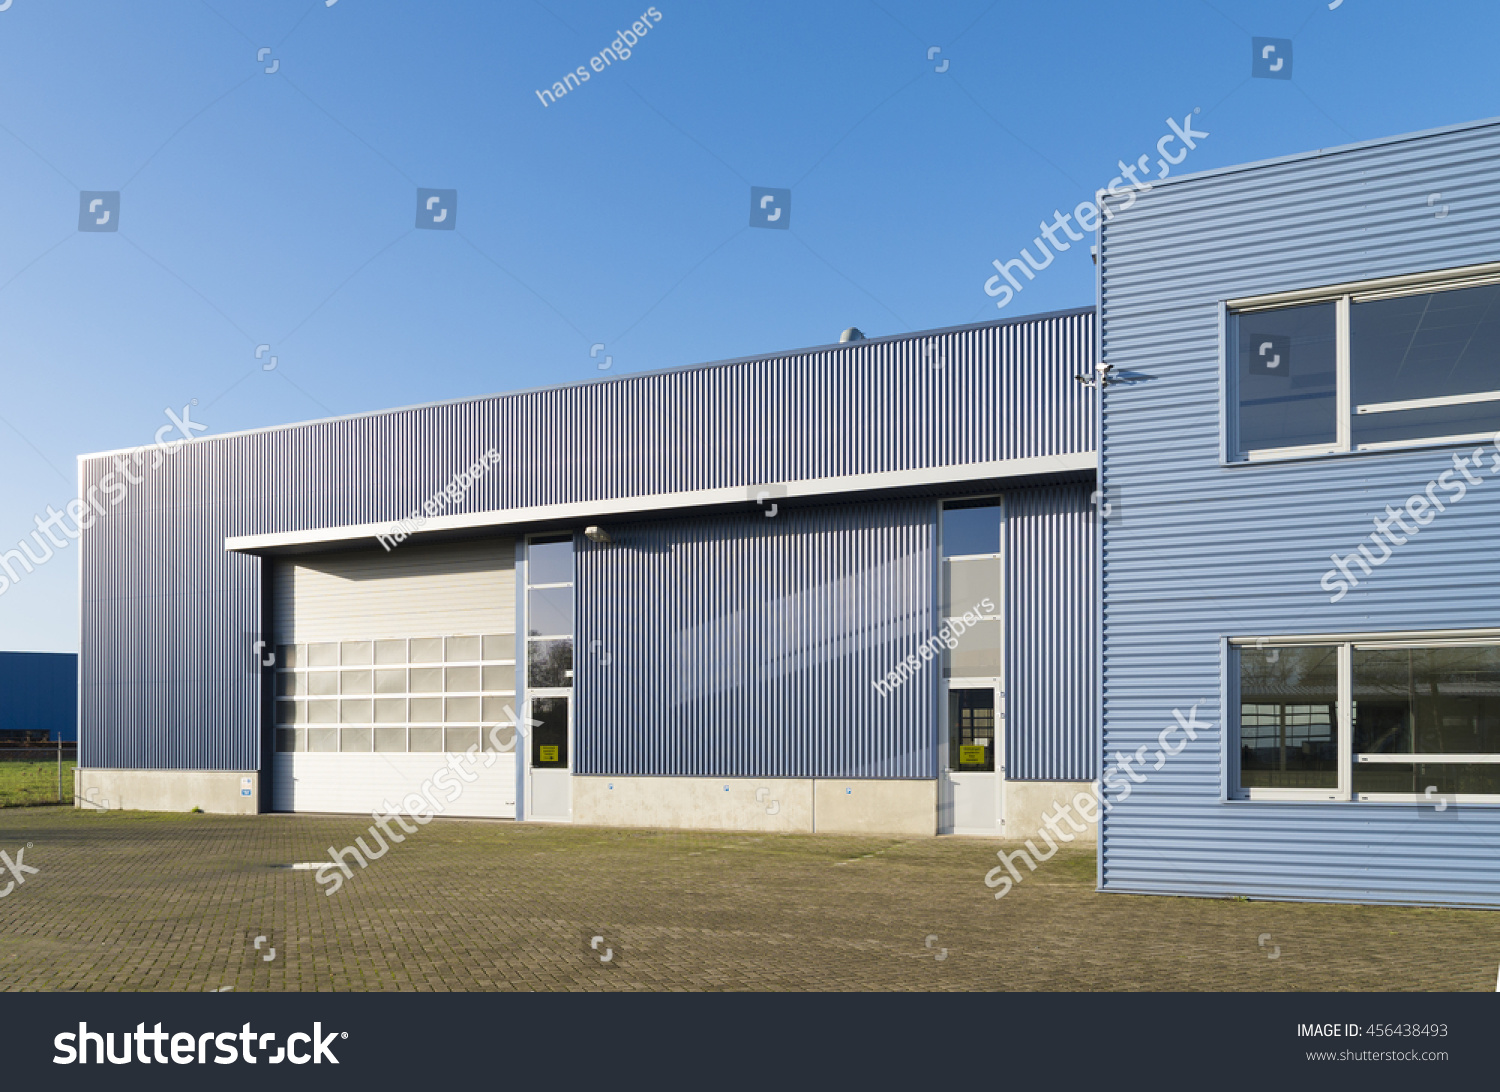 Warehouse exterior pictures